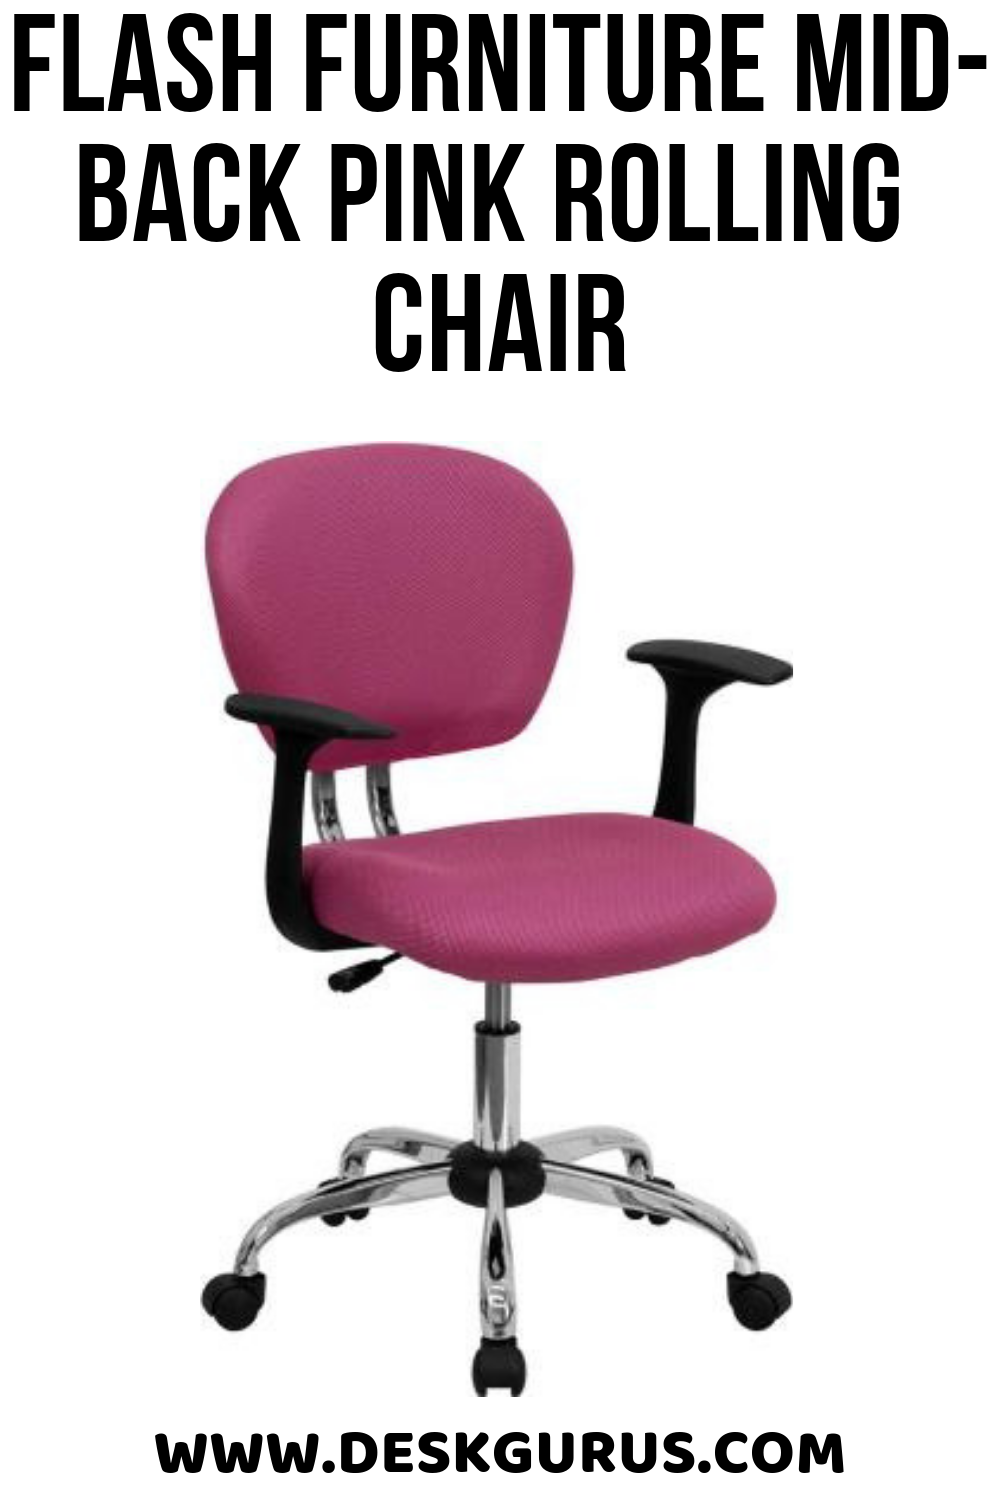 Stupendous Round Up The Best Pink Desk Chair Desk Chairs Desk Beatyapartments Chair Design Images Beatyapartmentscom